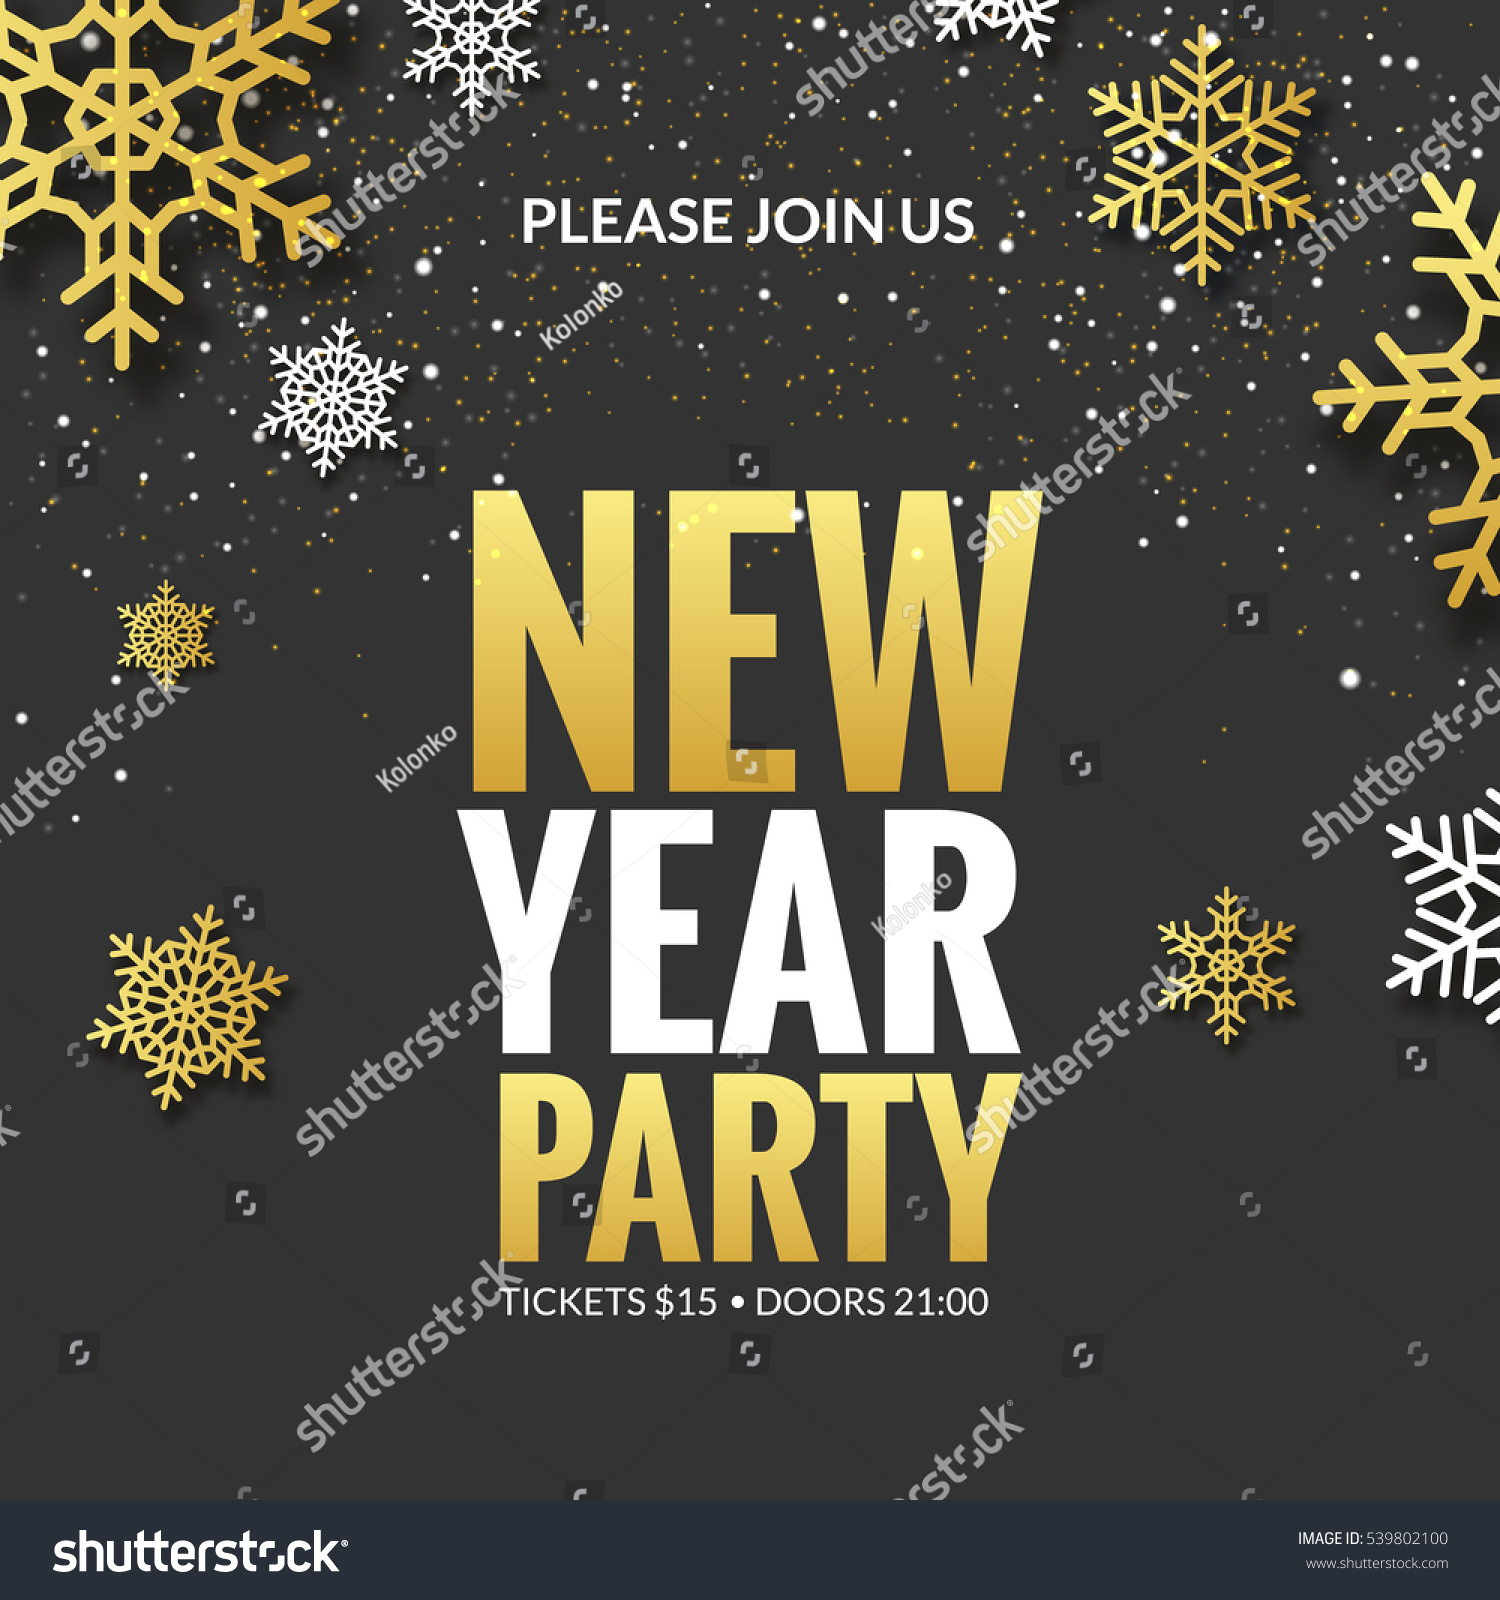 New Year Party Invitation Poster Design Stock Vector 539802100 ...